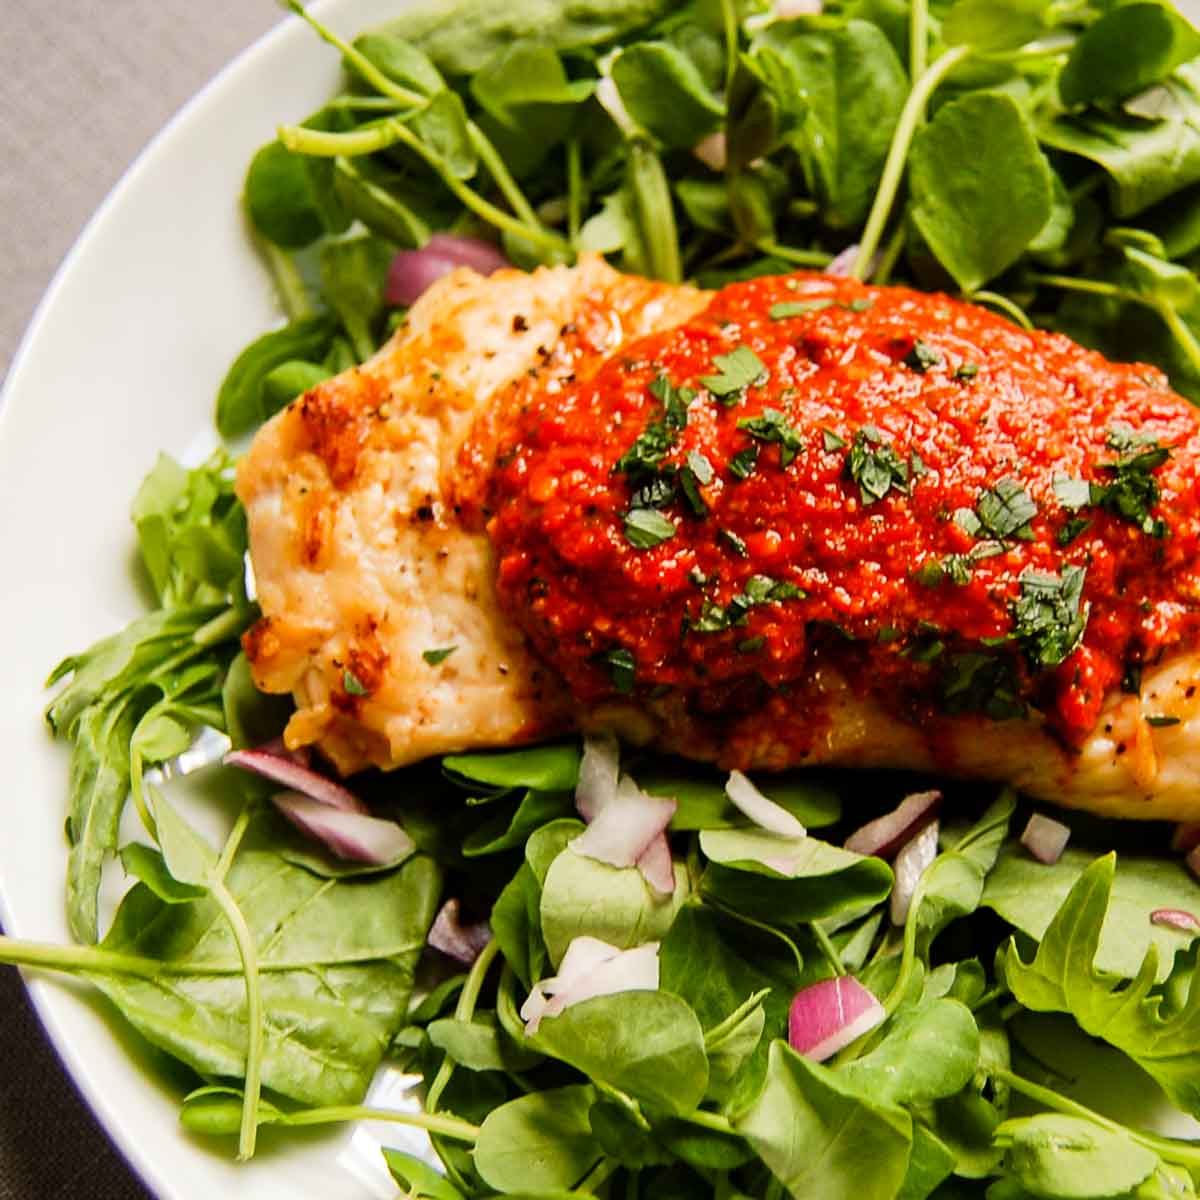 romesco sauce on a grilled chicken salad